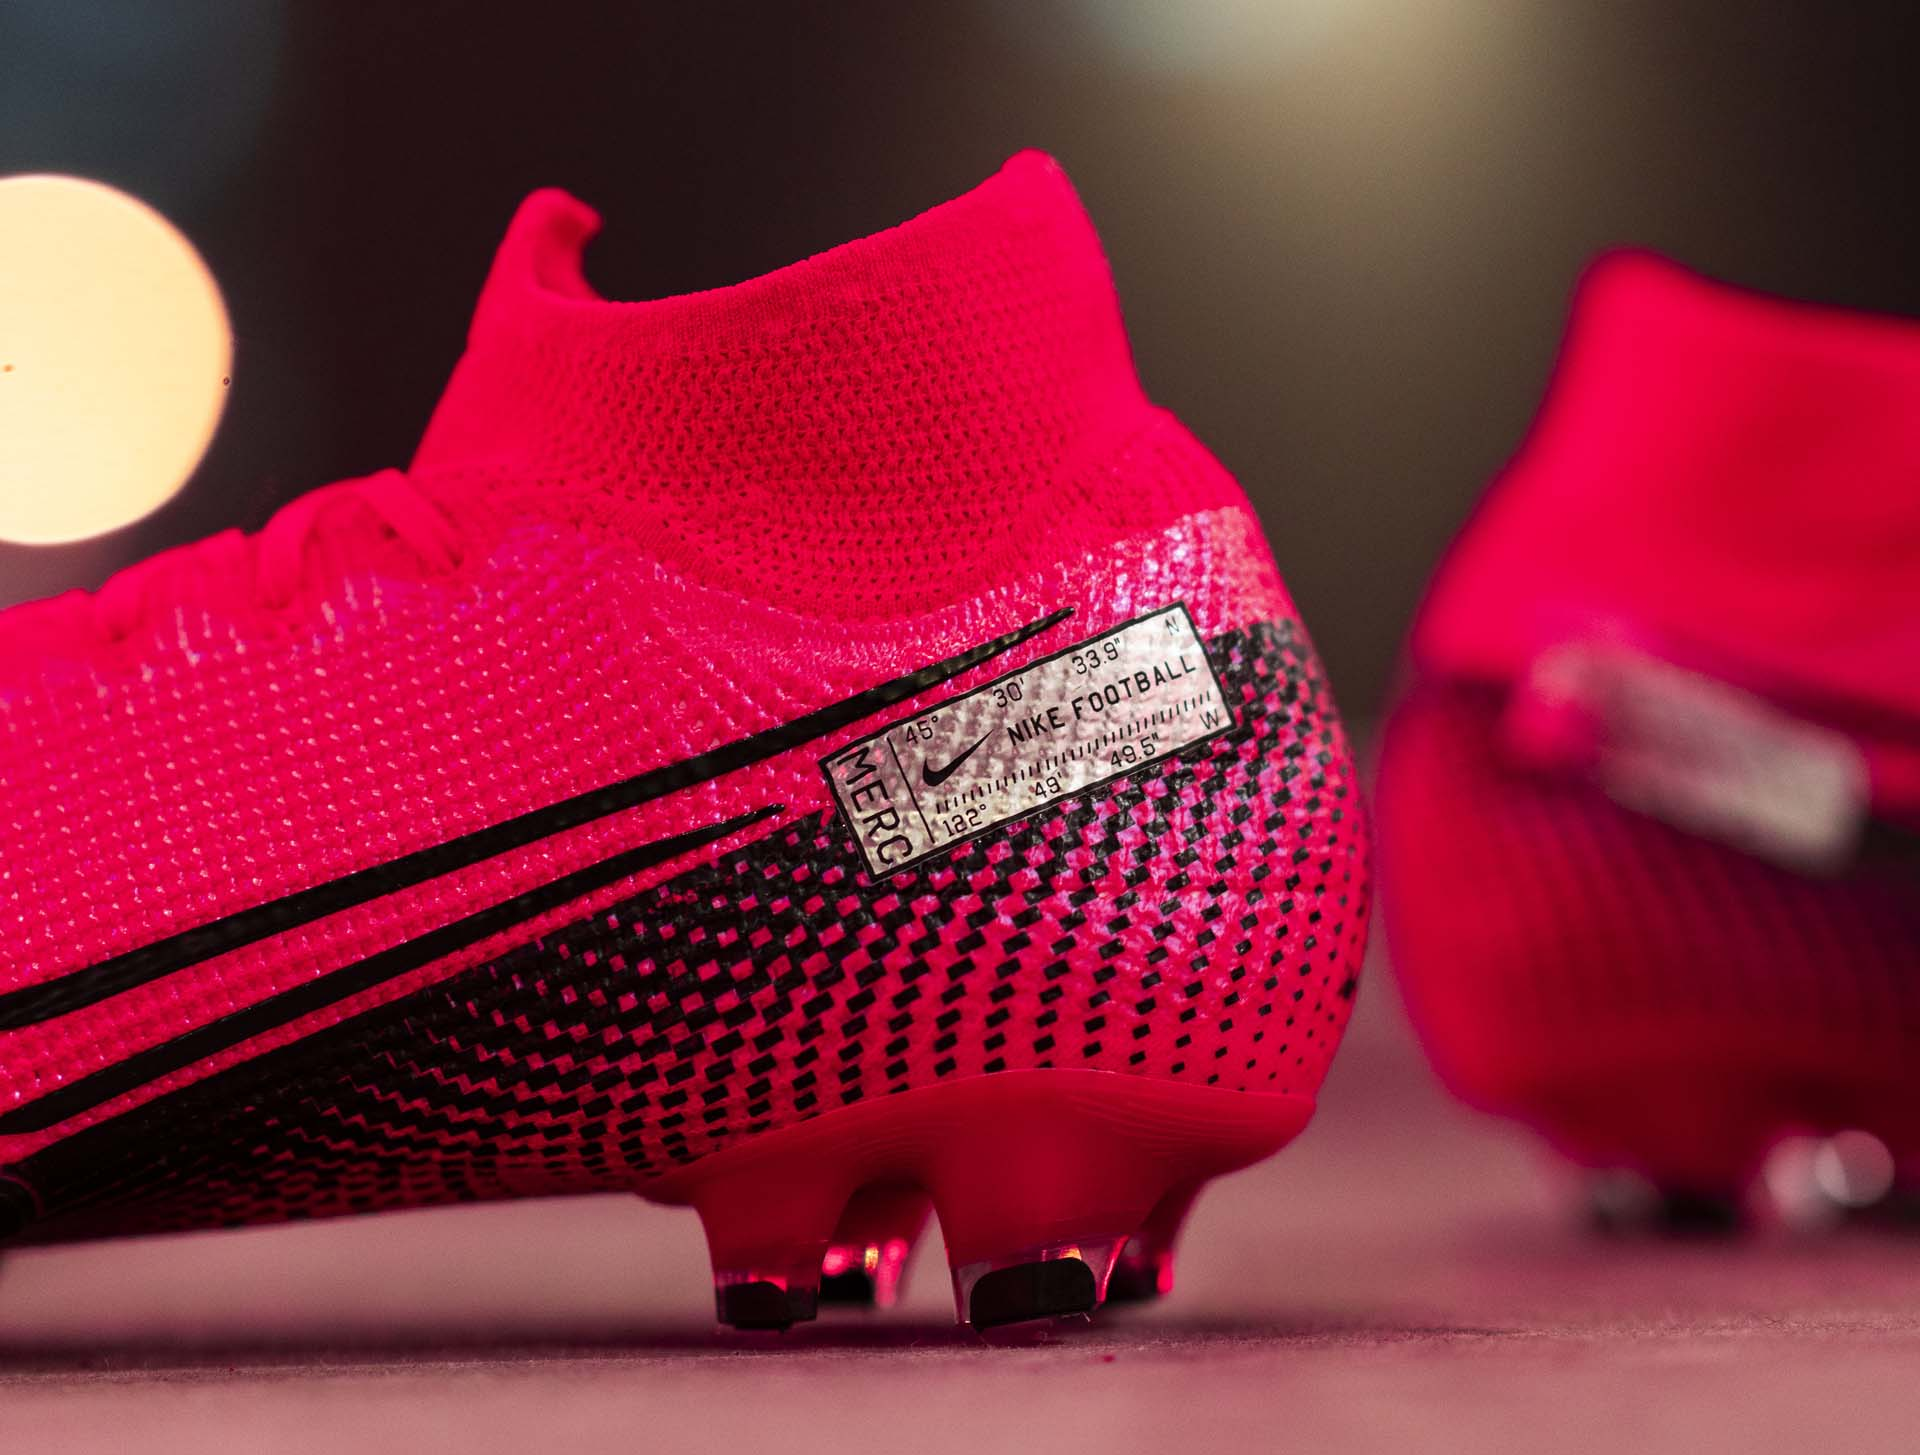 9-nike-future-lac-mercurial-collection-min.jpg